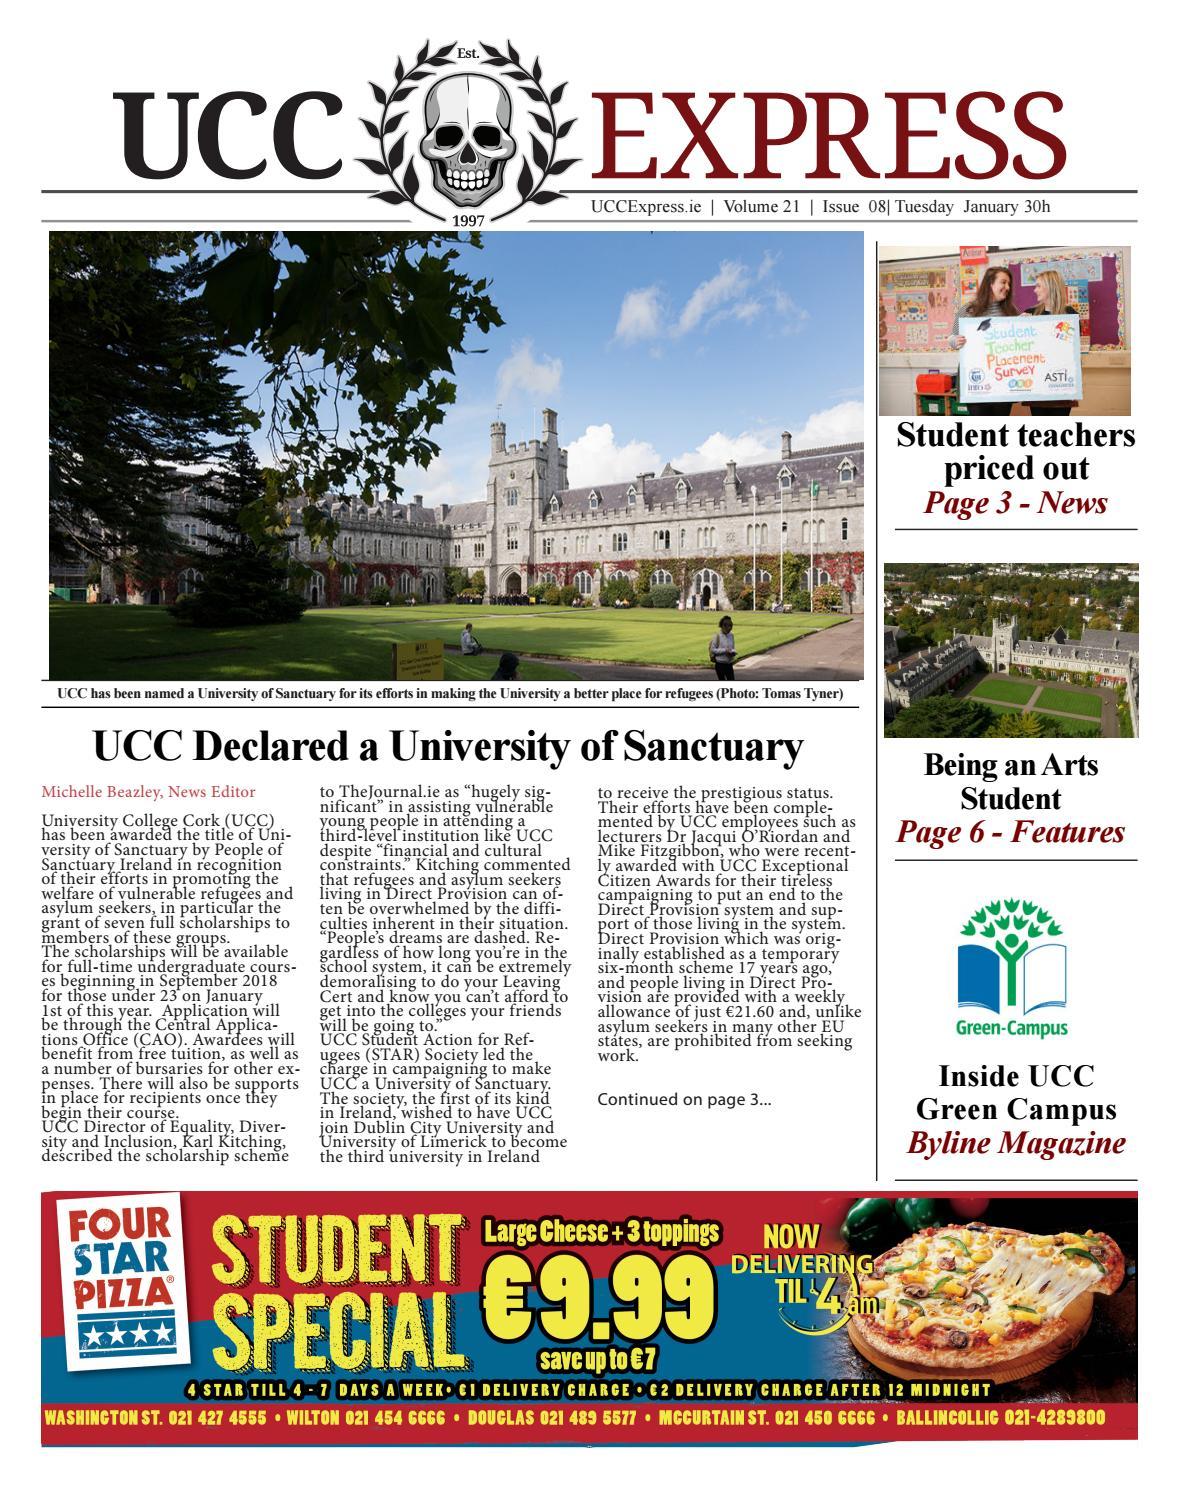 UCC Express Vol  21 Issue 08 by University Express - issuu